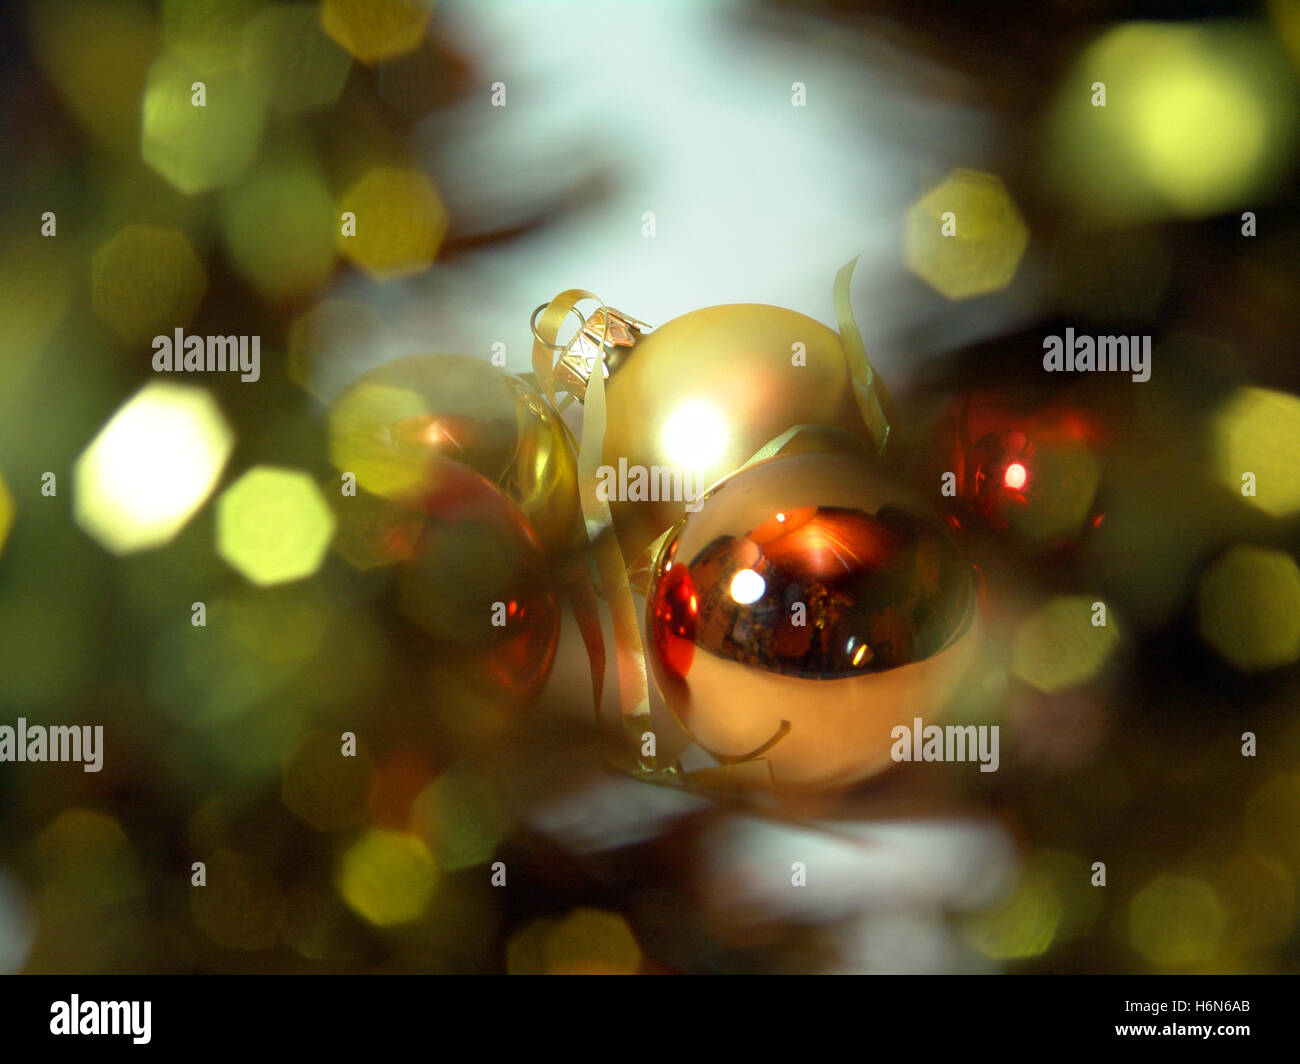 Weihnachtsglanz Stock Photos & Weihnachtsglanz Stock Images - Alamy